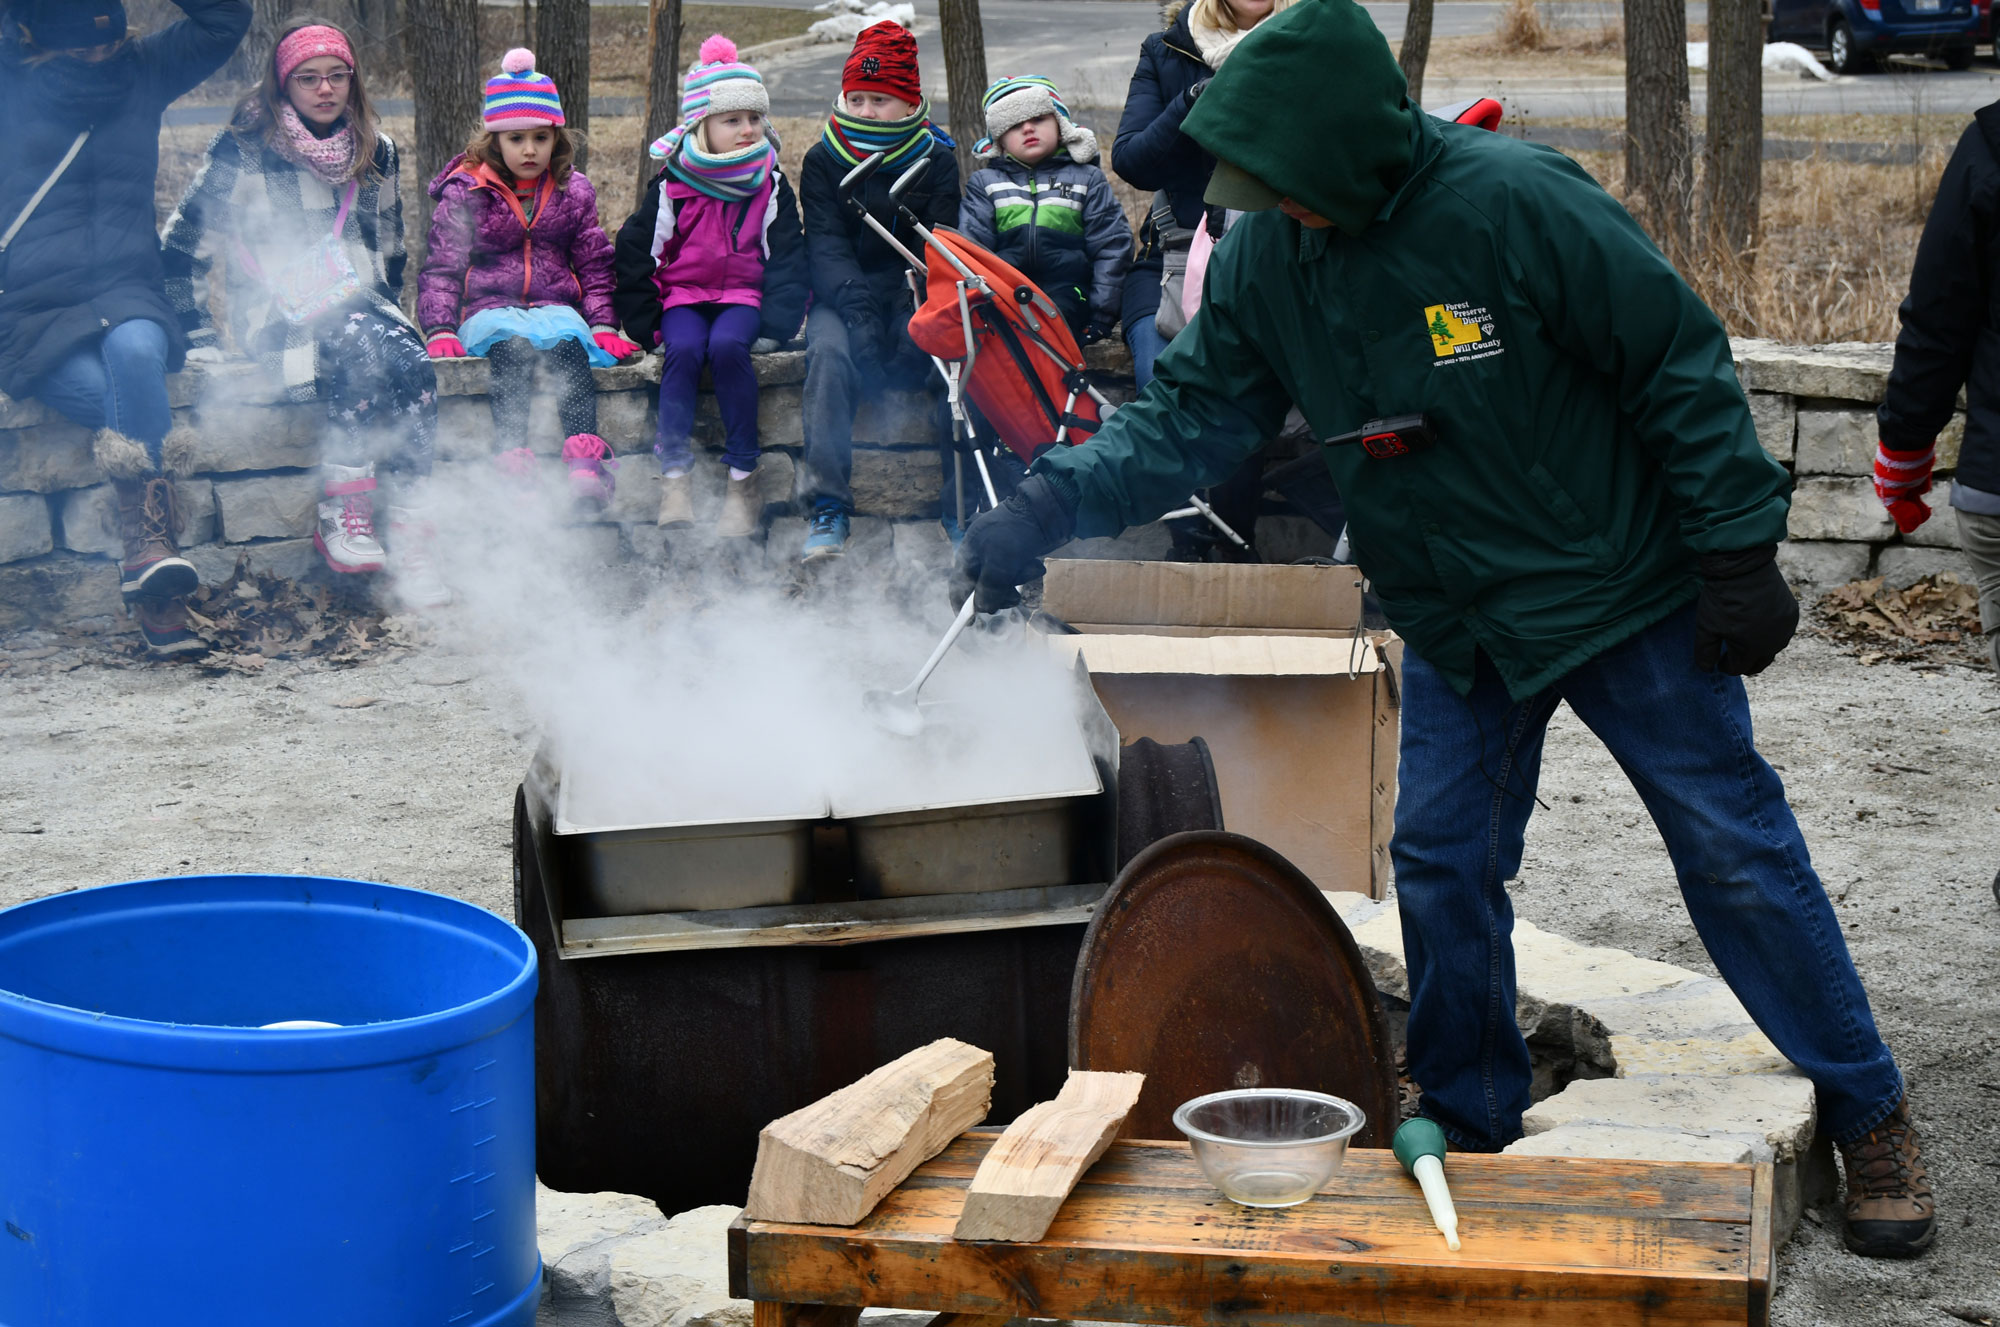 Photo for: Field Trip Offers Students More Than Just the Sweet Taste of Syrup